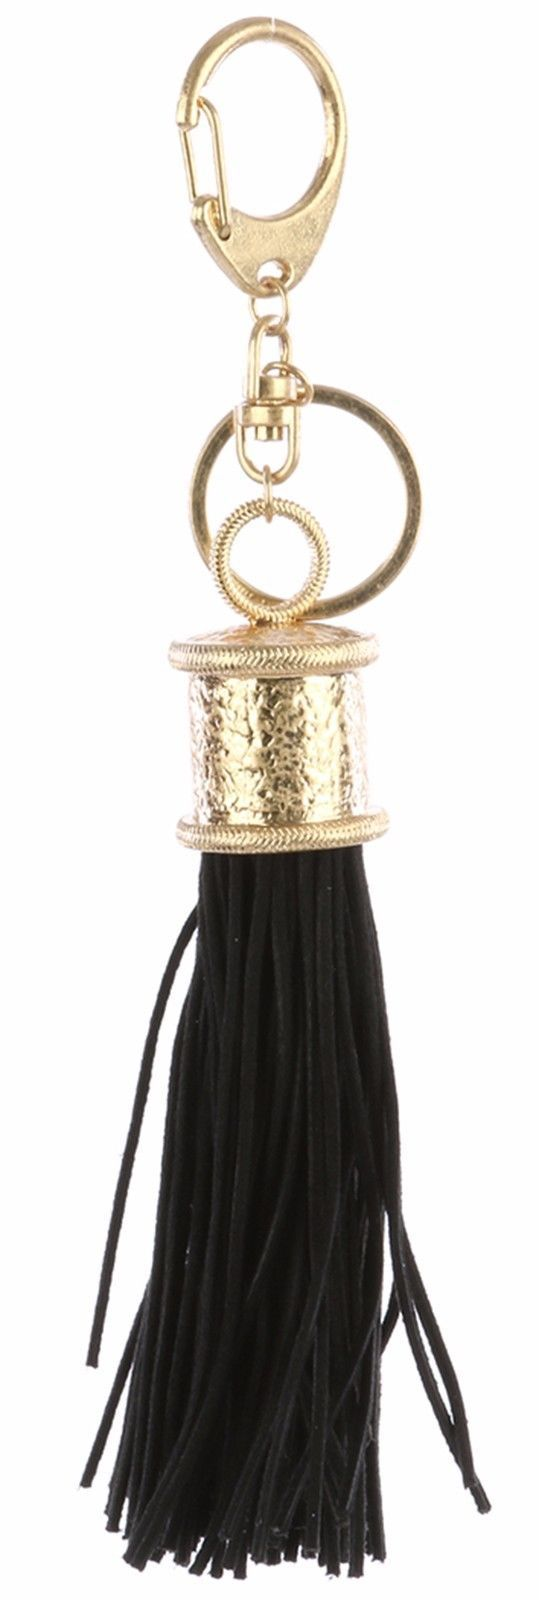 Tassel Key Chain Handbag Charm Accessory Key Fob Charm Claw Hook Goldtone Black